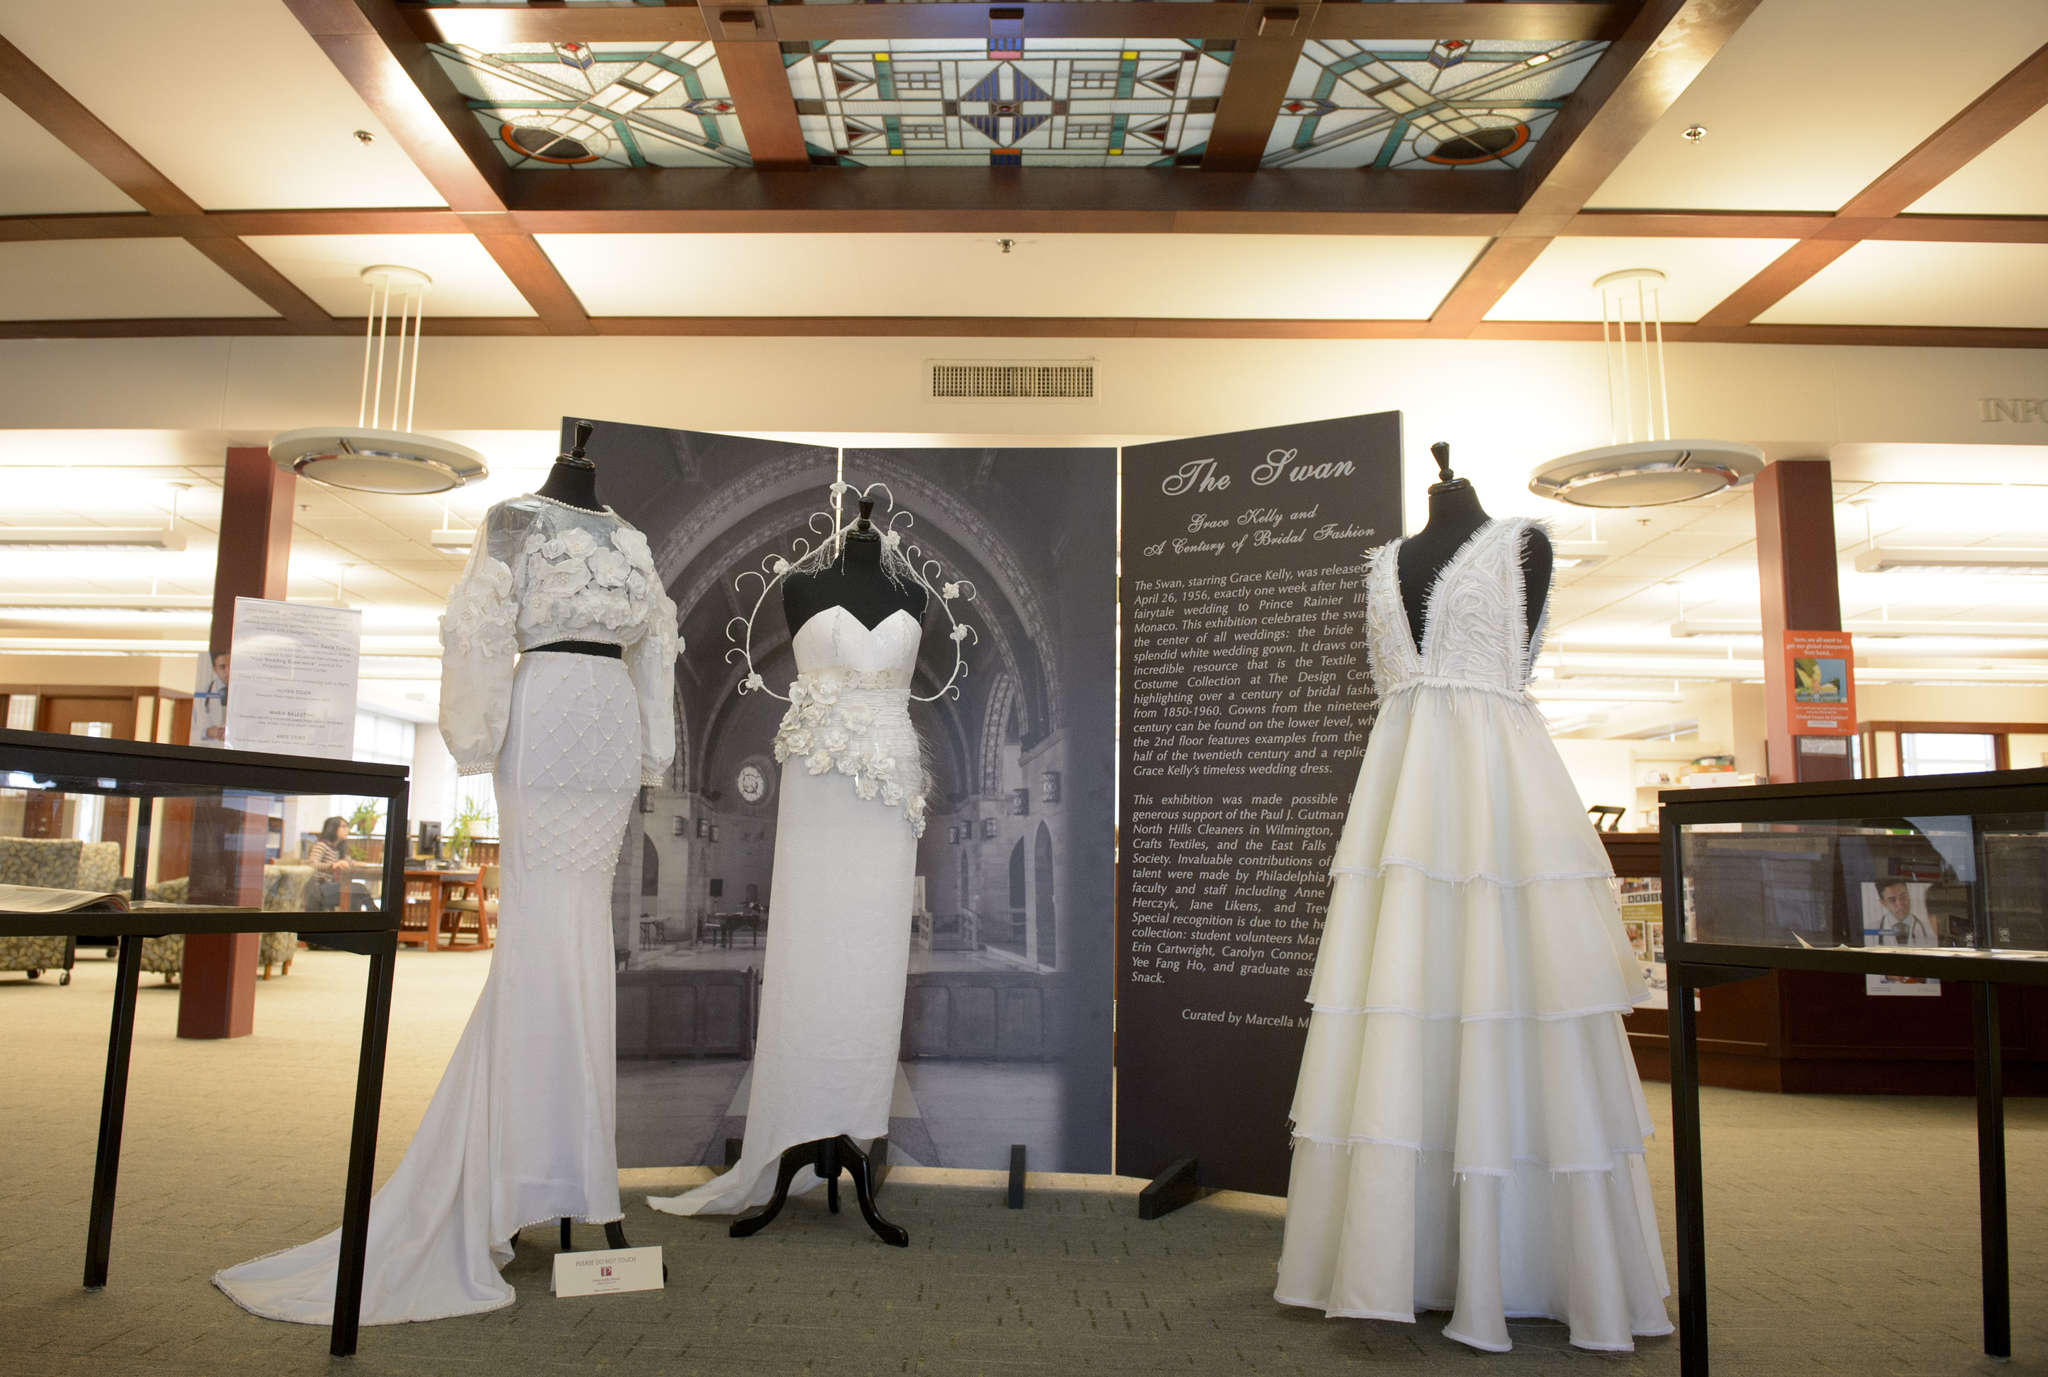 Contemporary wedding dresses designed by students in the exhibit at Philadelphia University.